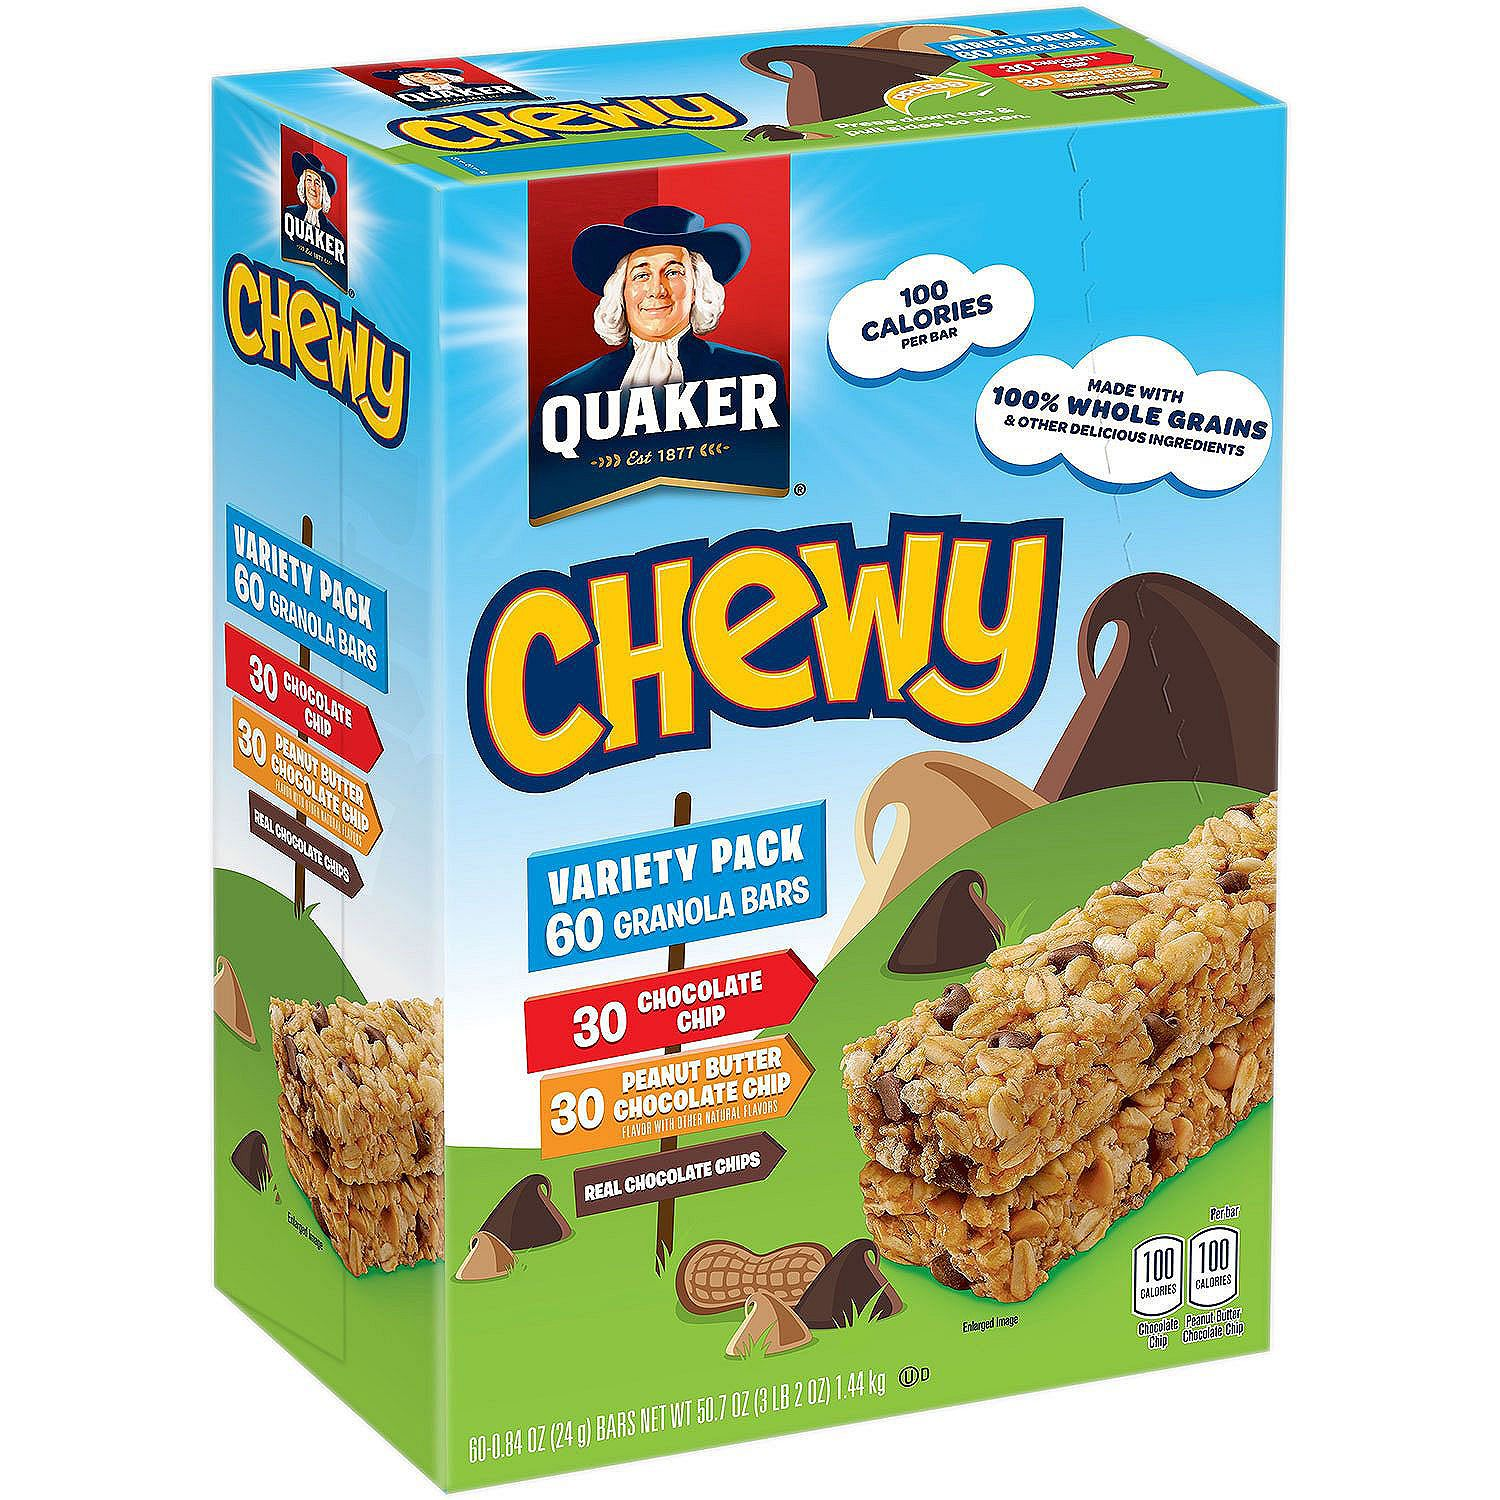 Quaker Chewy Granola Bars 60-ct. Variety Pack (Two Options) for $6.48 at Sam's Club